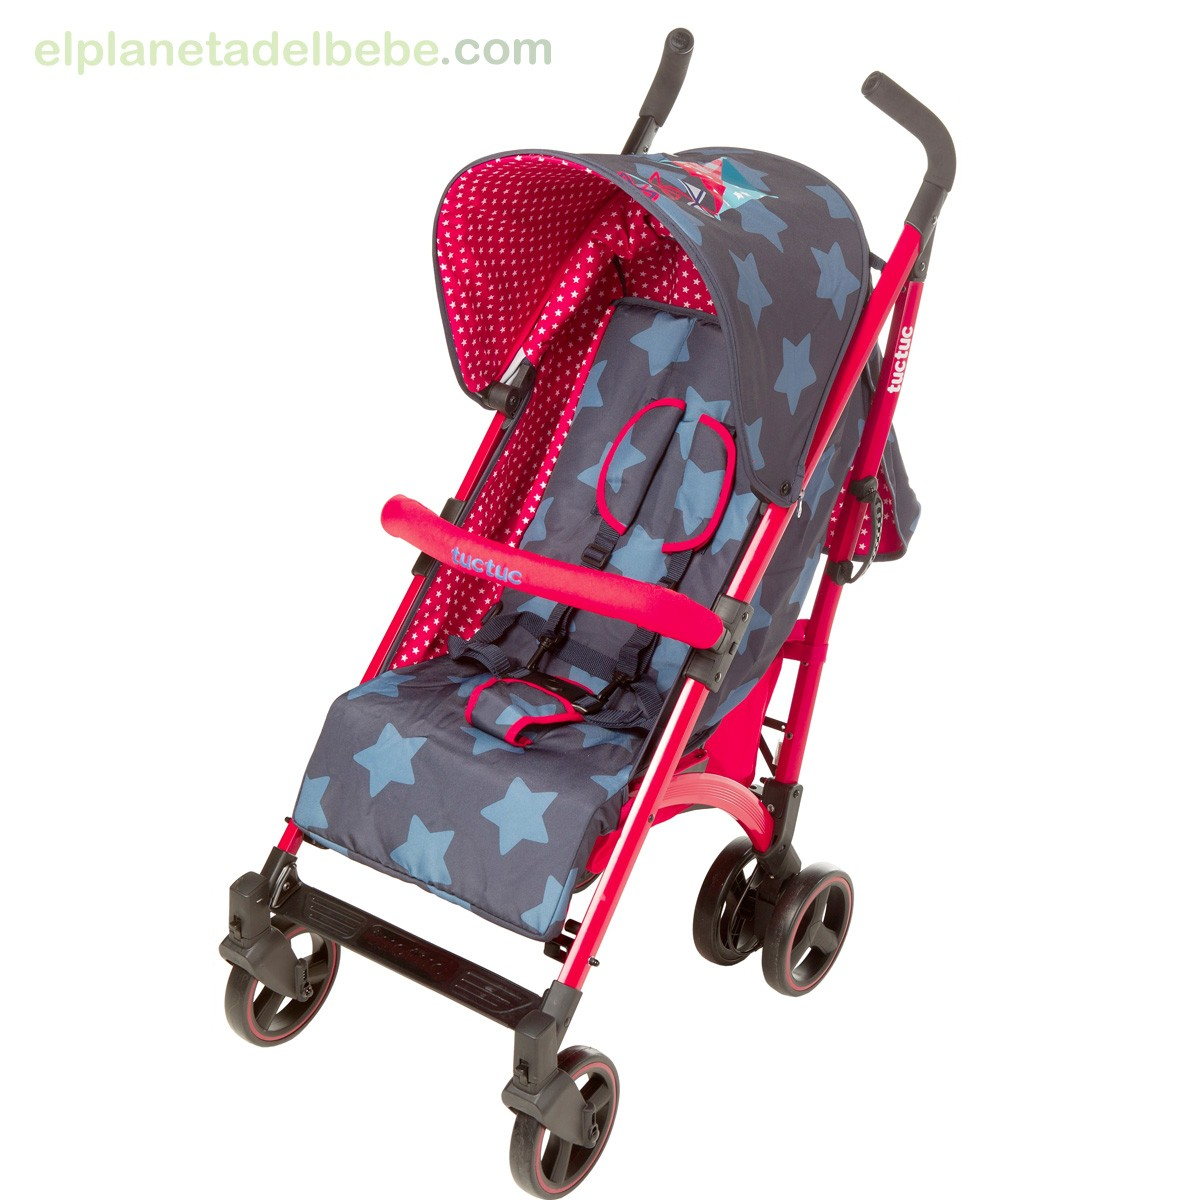 Maclaren Sillas De Paseo Outlet Silla De Paseo Tuc Tuc Yupi Life In The Air